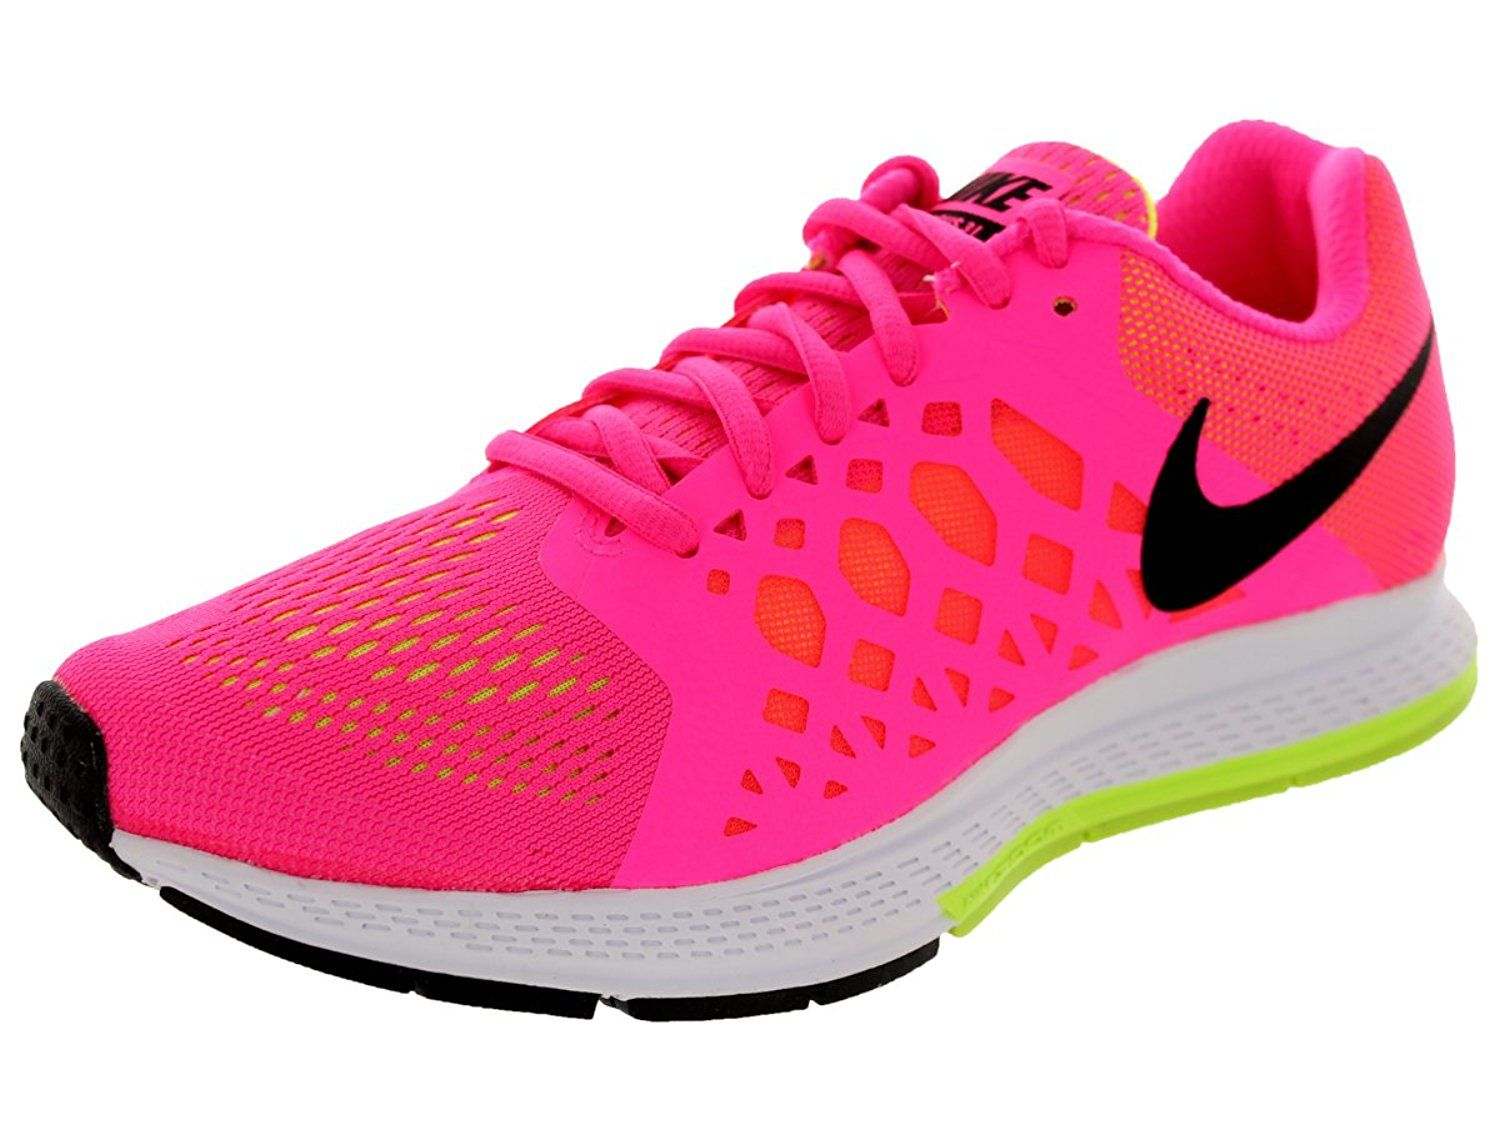 new product 58483 88e7e tenis nike para mujer, tenis nike mujer blancos, tenis nike mujer negro, zapatos  nike mujer 2019, tenis nike mujer rosas, tenis nike mujer air max, ...